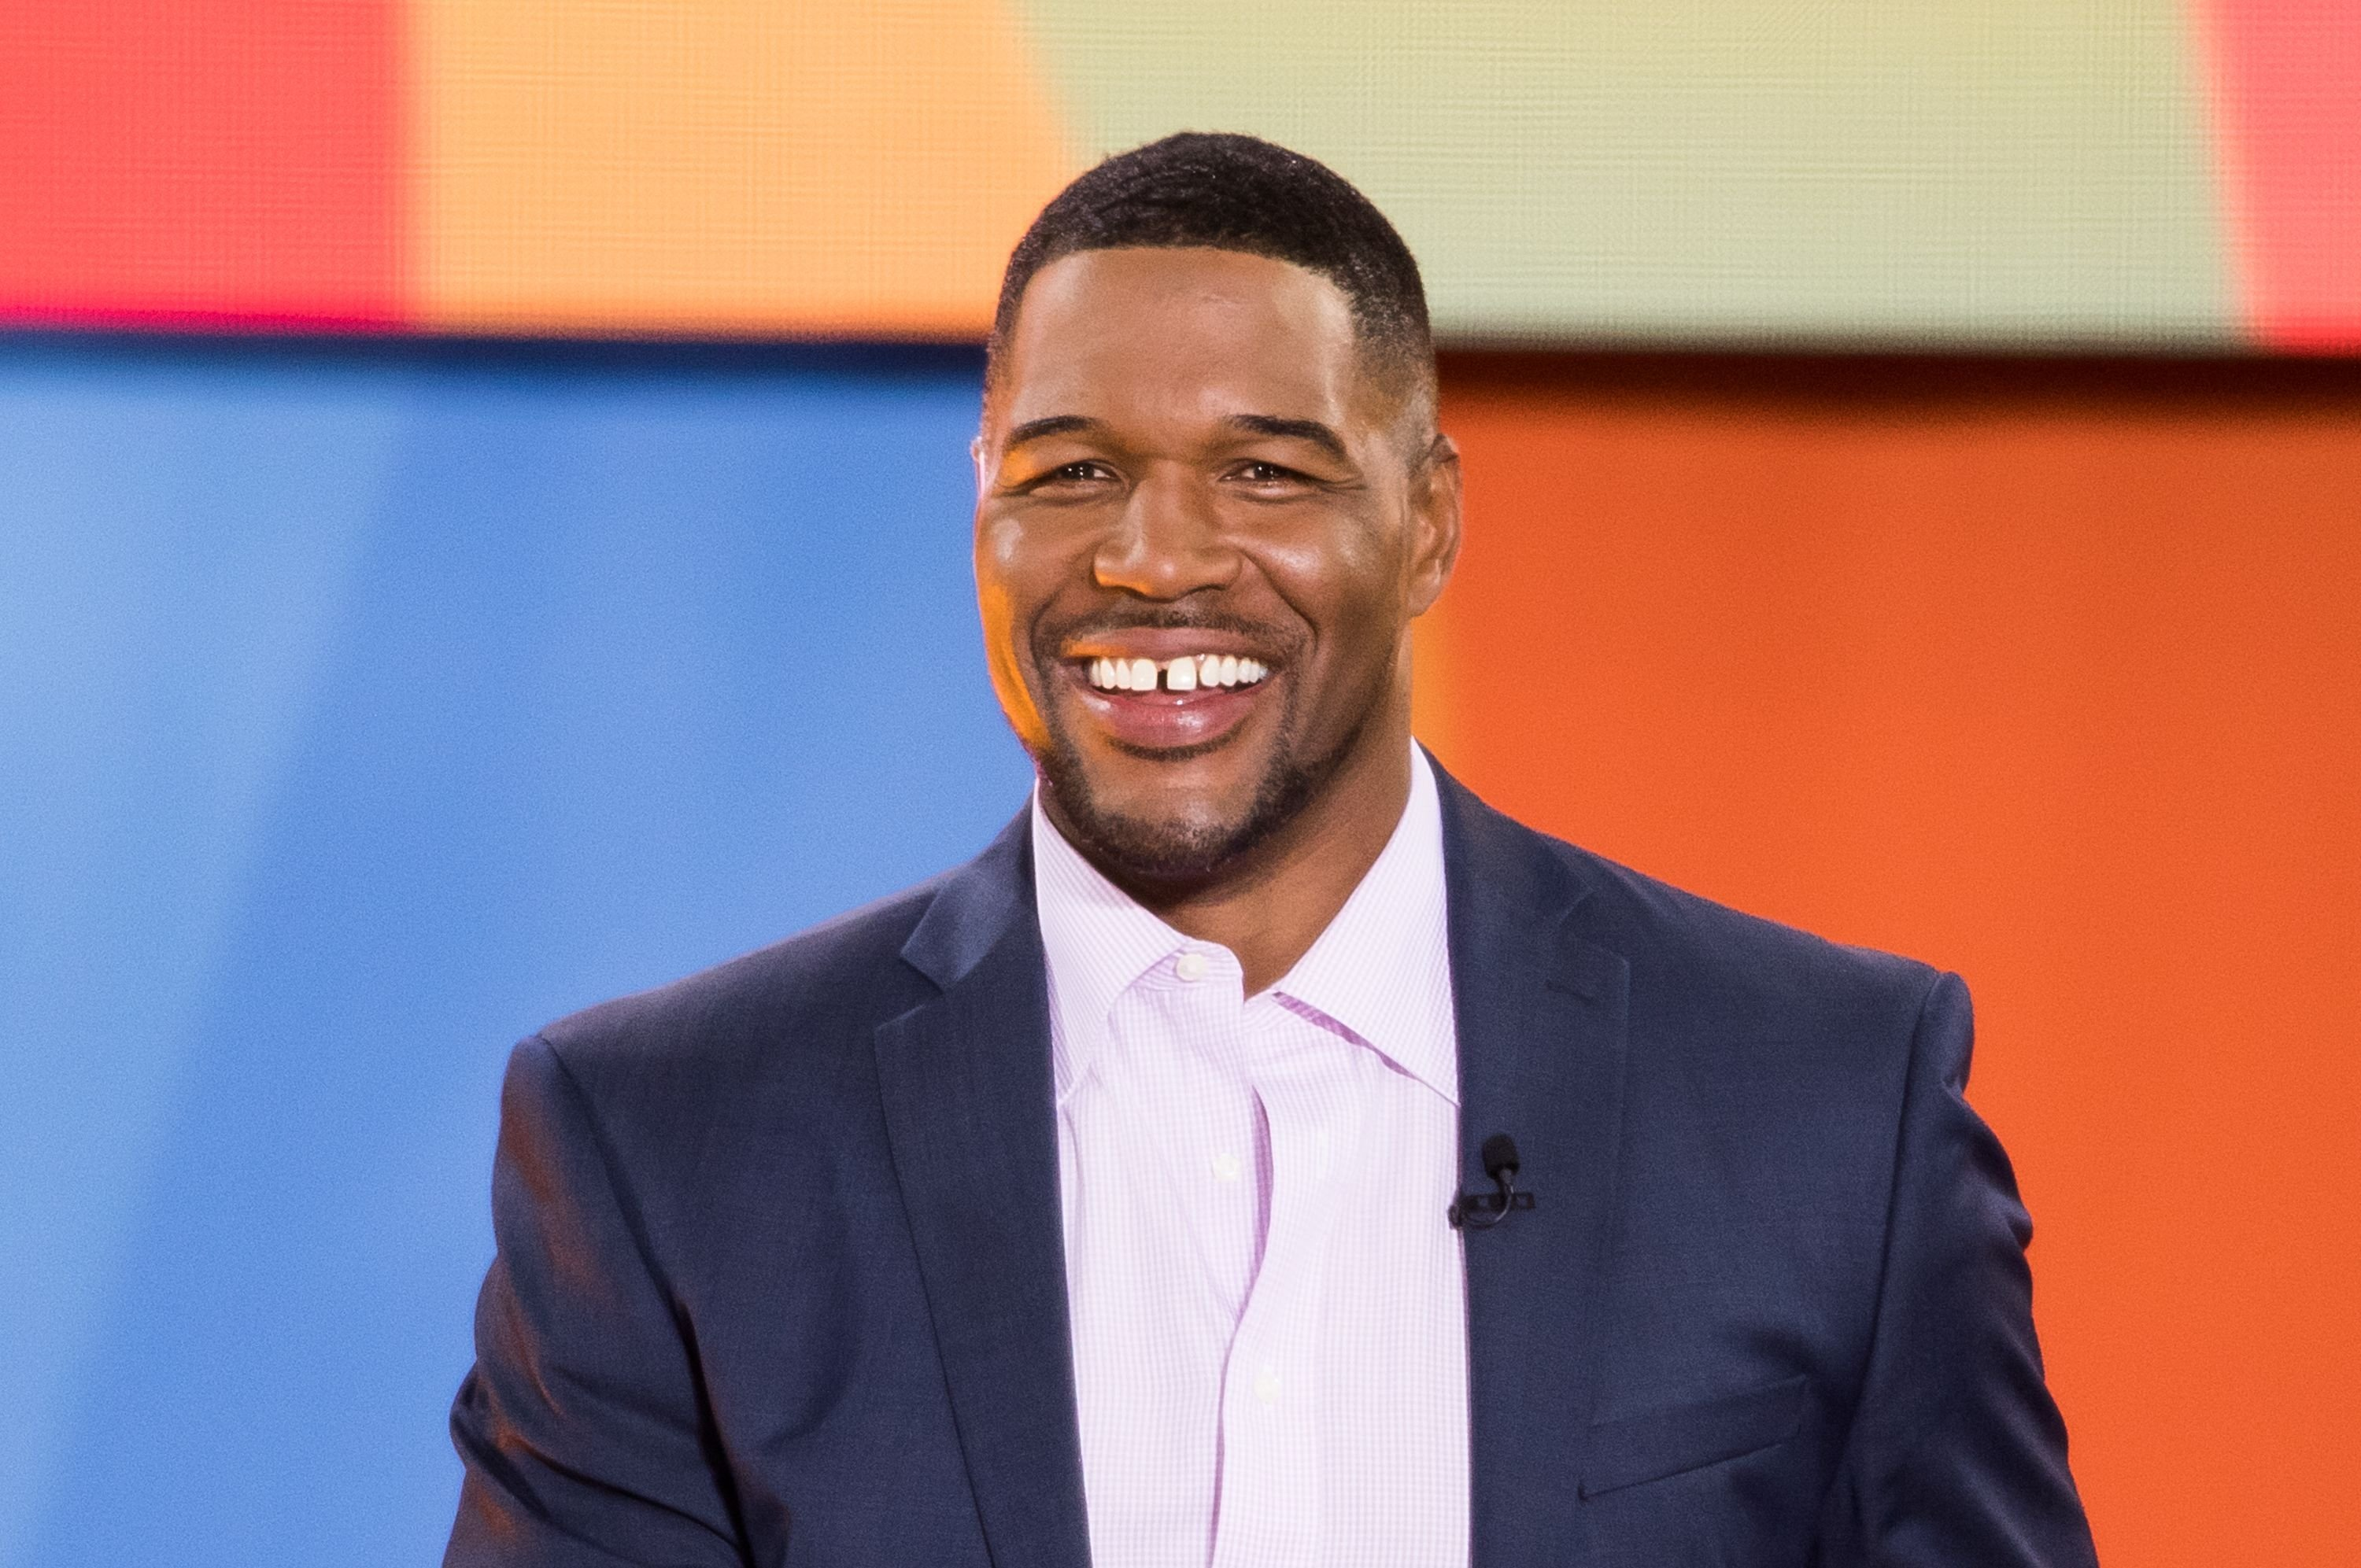 """Michael Strahan at ABC's """"Good Morning America"""" at Rumsey Playfield, Central Park on July 6, 2018 in New York City.   Source: Getty Images"""